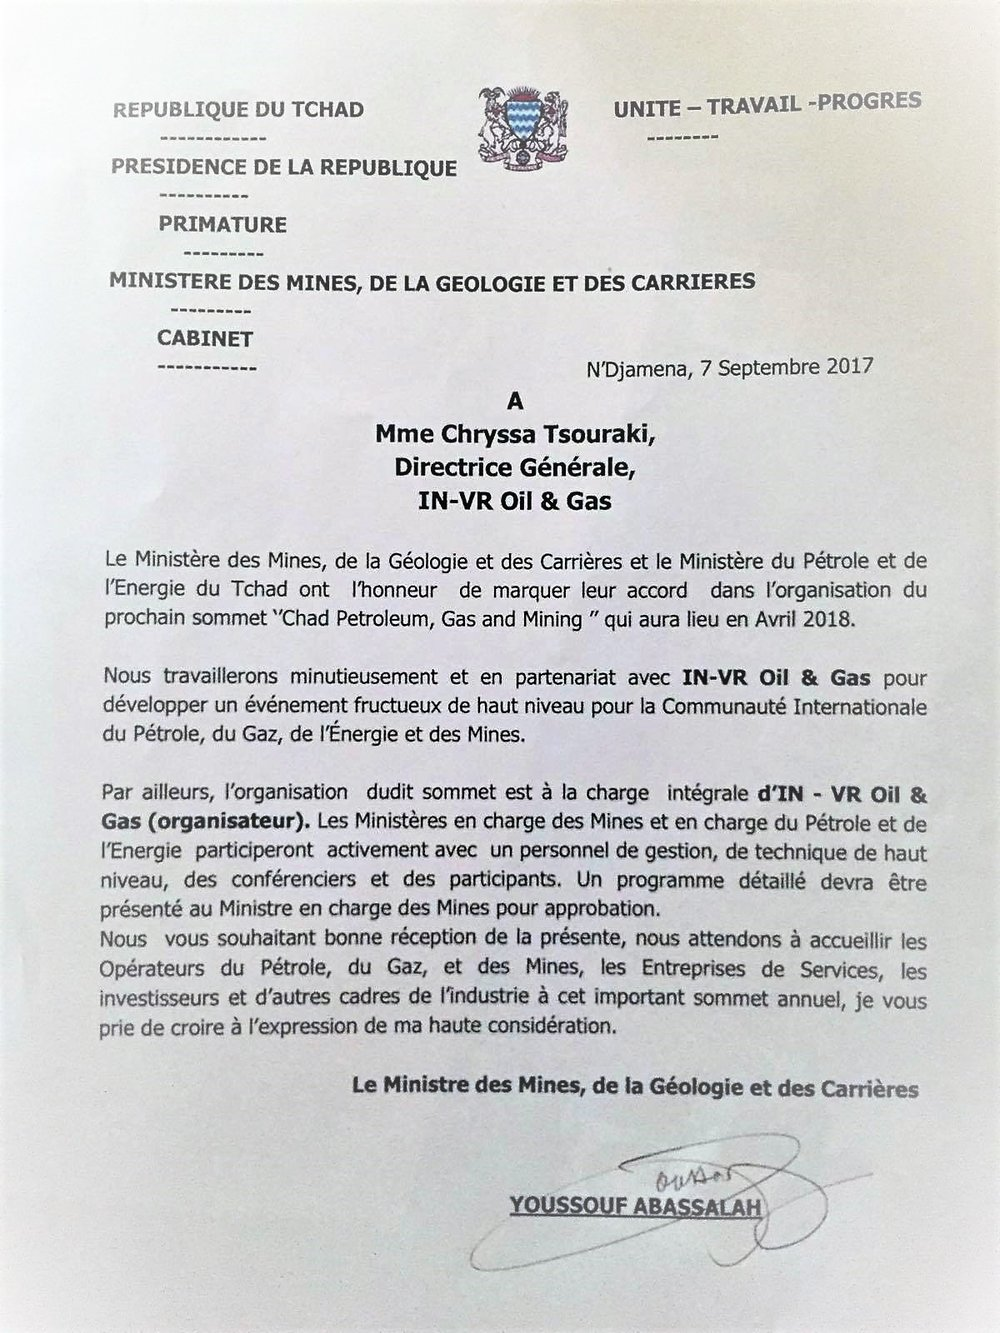 Letter of endorsement by the Ministry of Mines, Geology and Quarries of Chad, September 7th 2017, Paris.